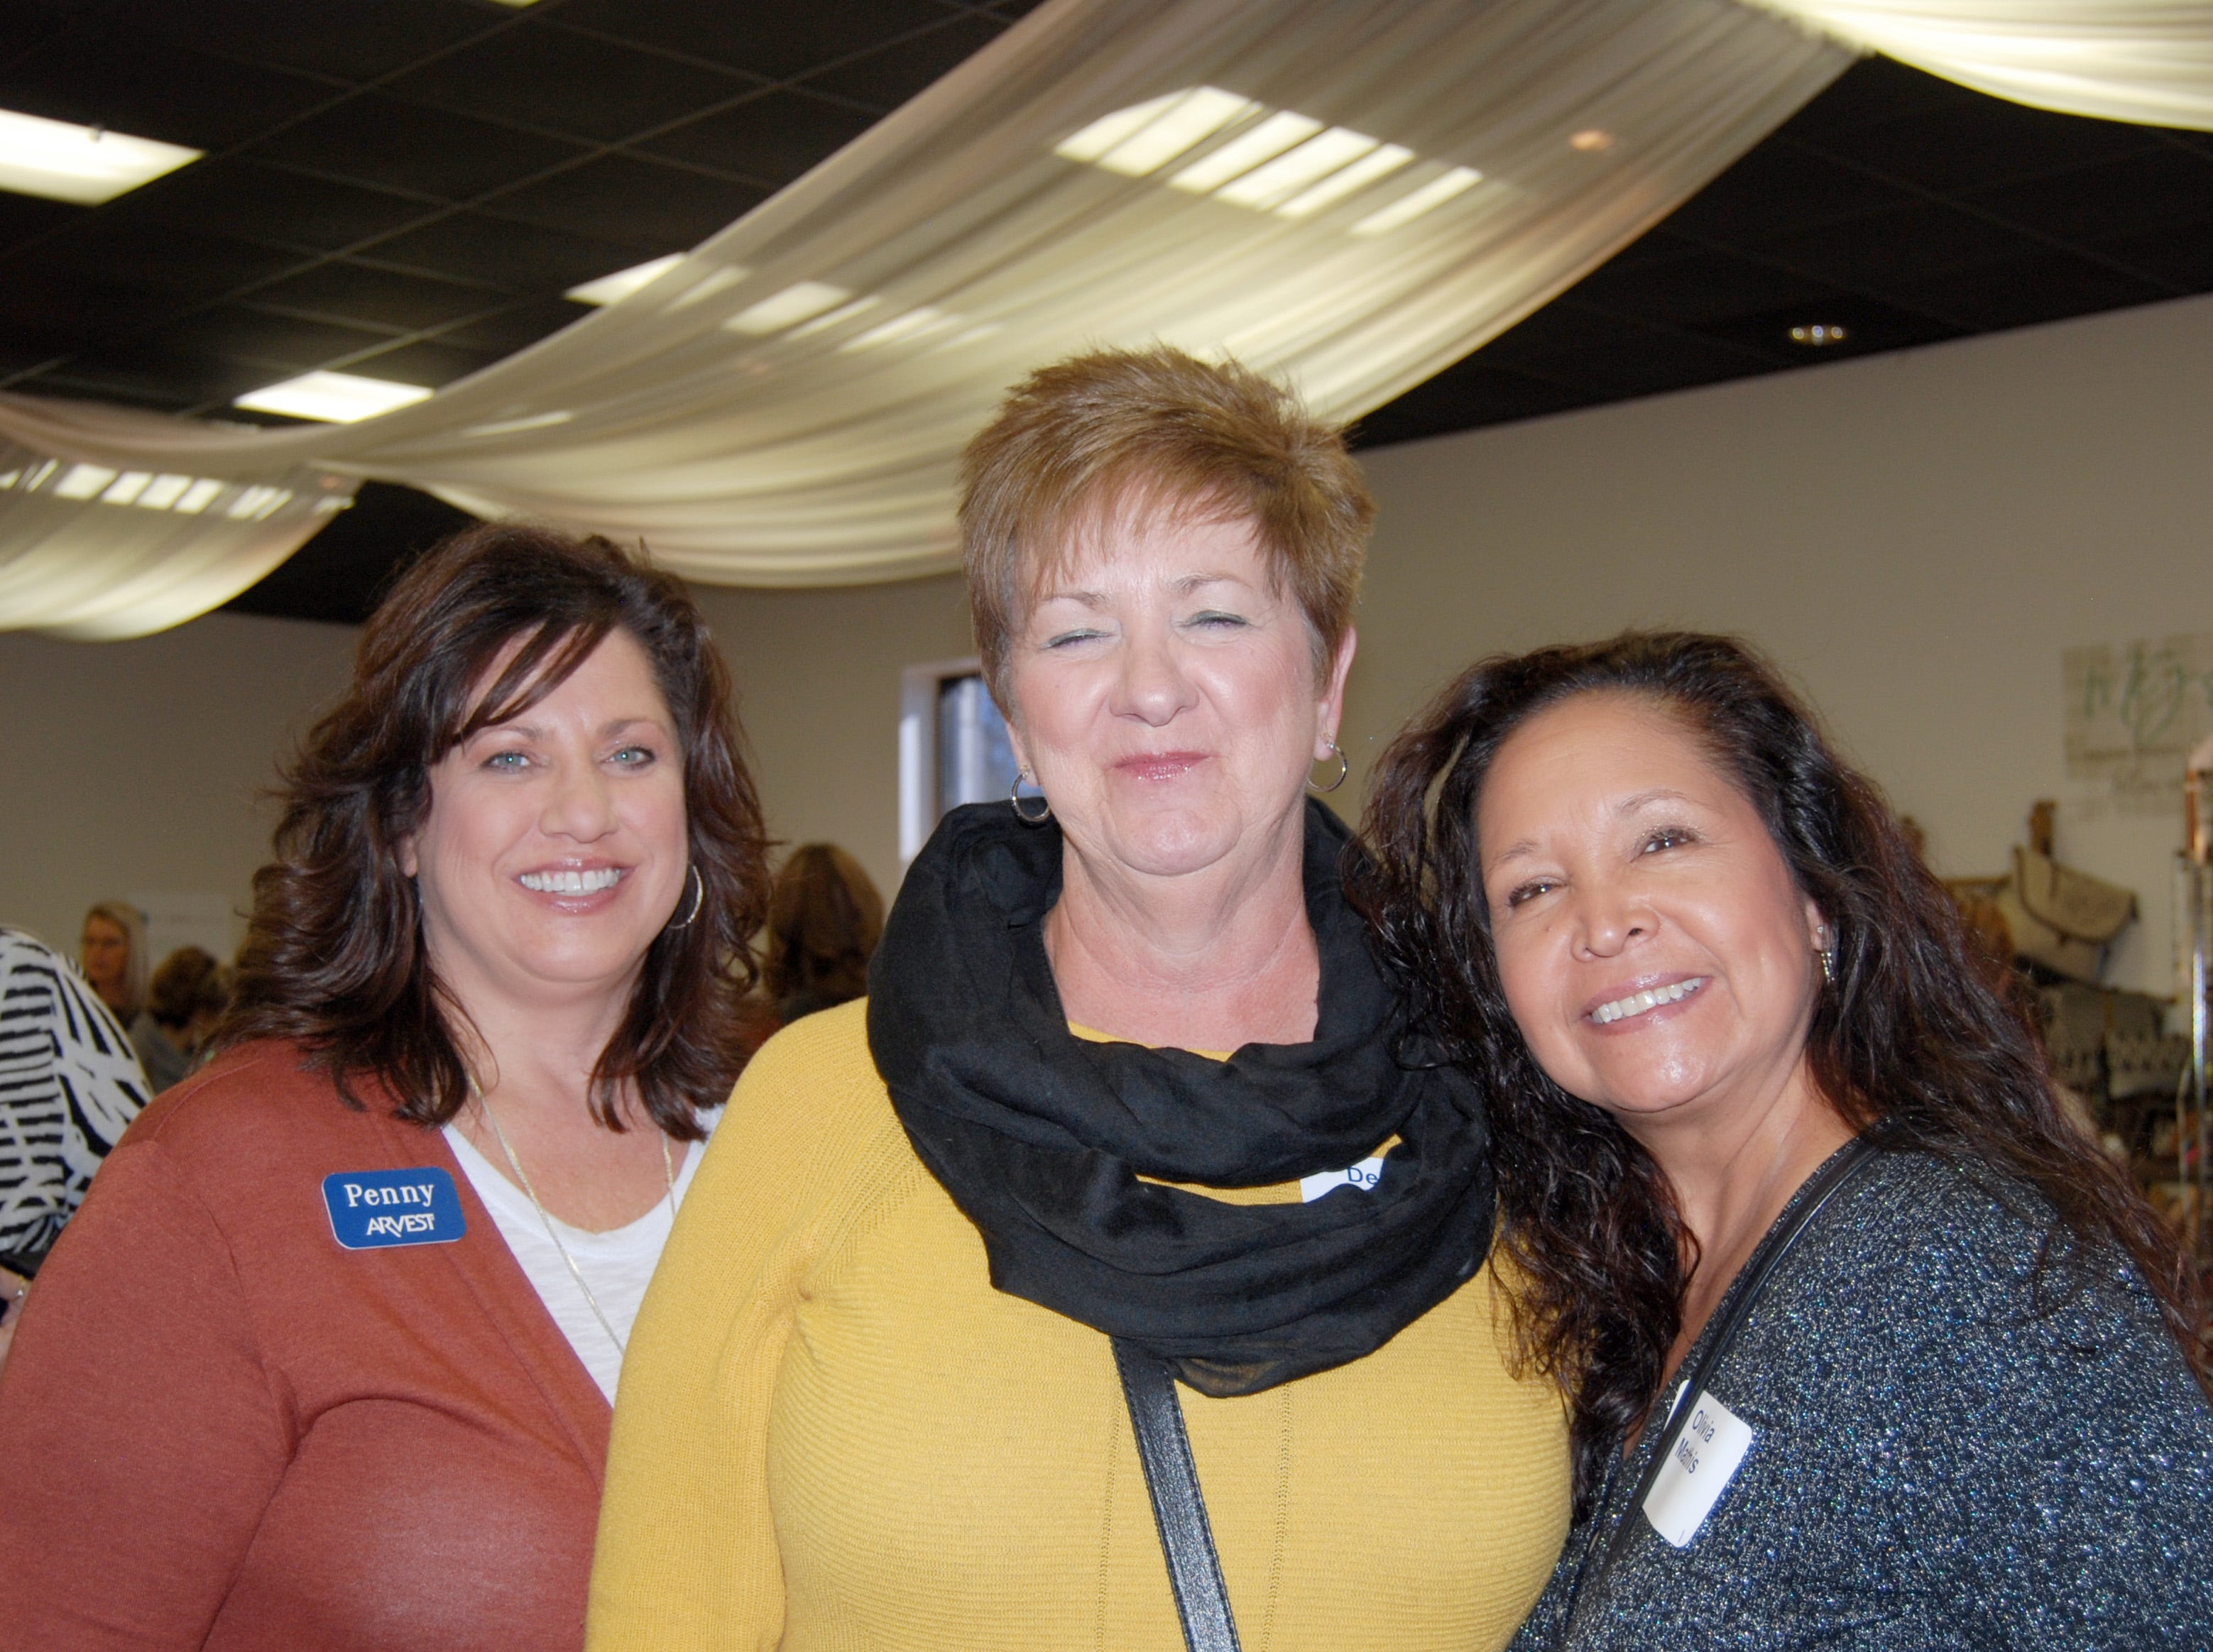 Penny Lacy, Debbie Johnson and Olivia Mathis